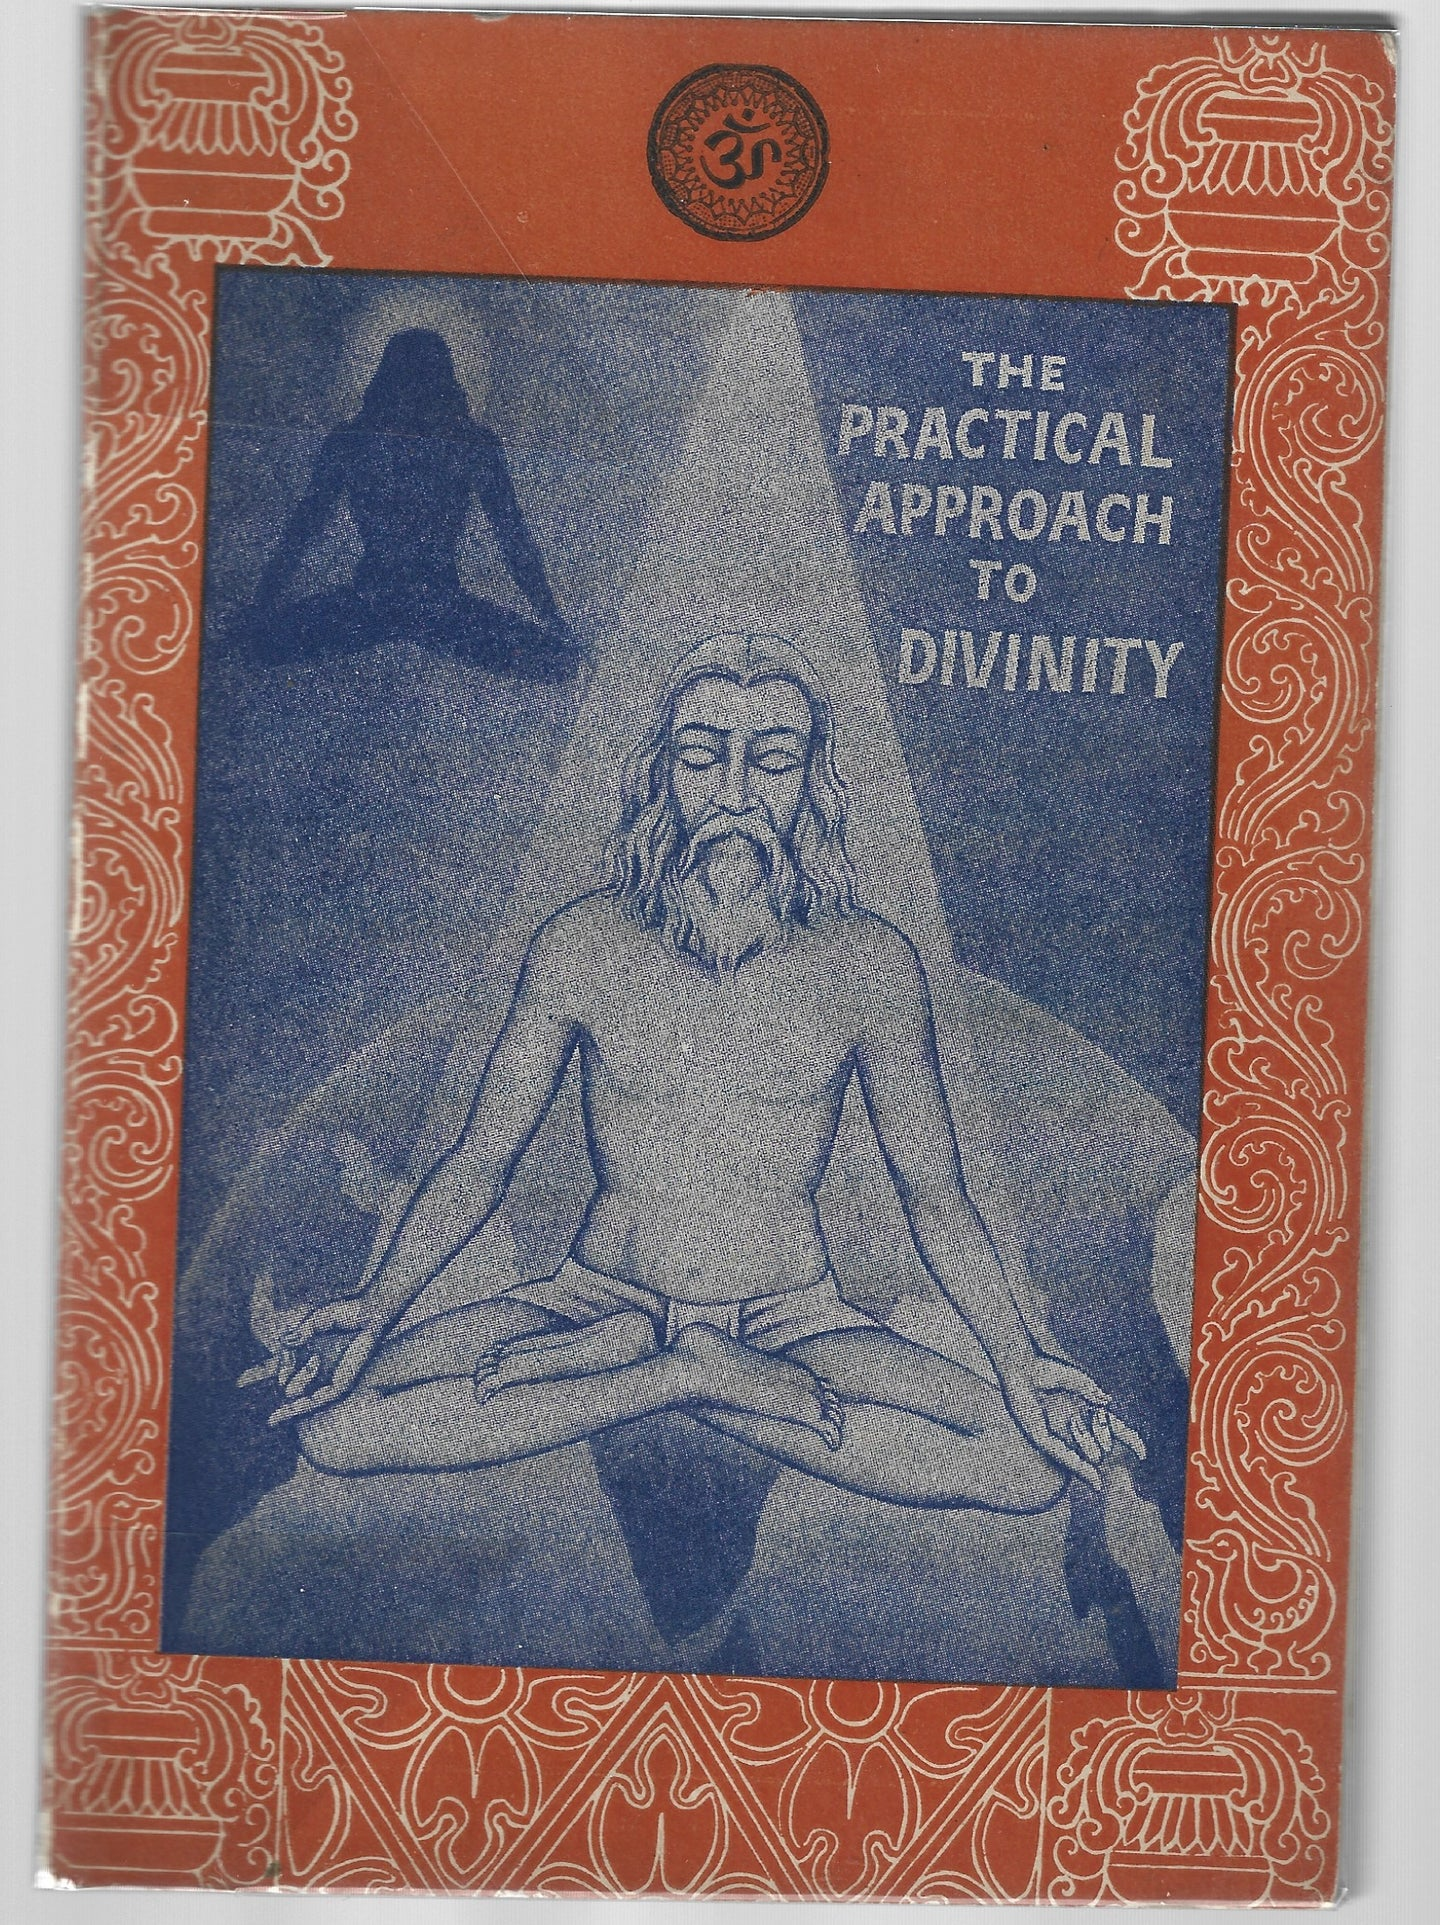 The Practical Approach to Divinity